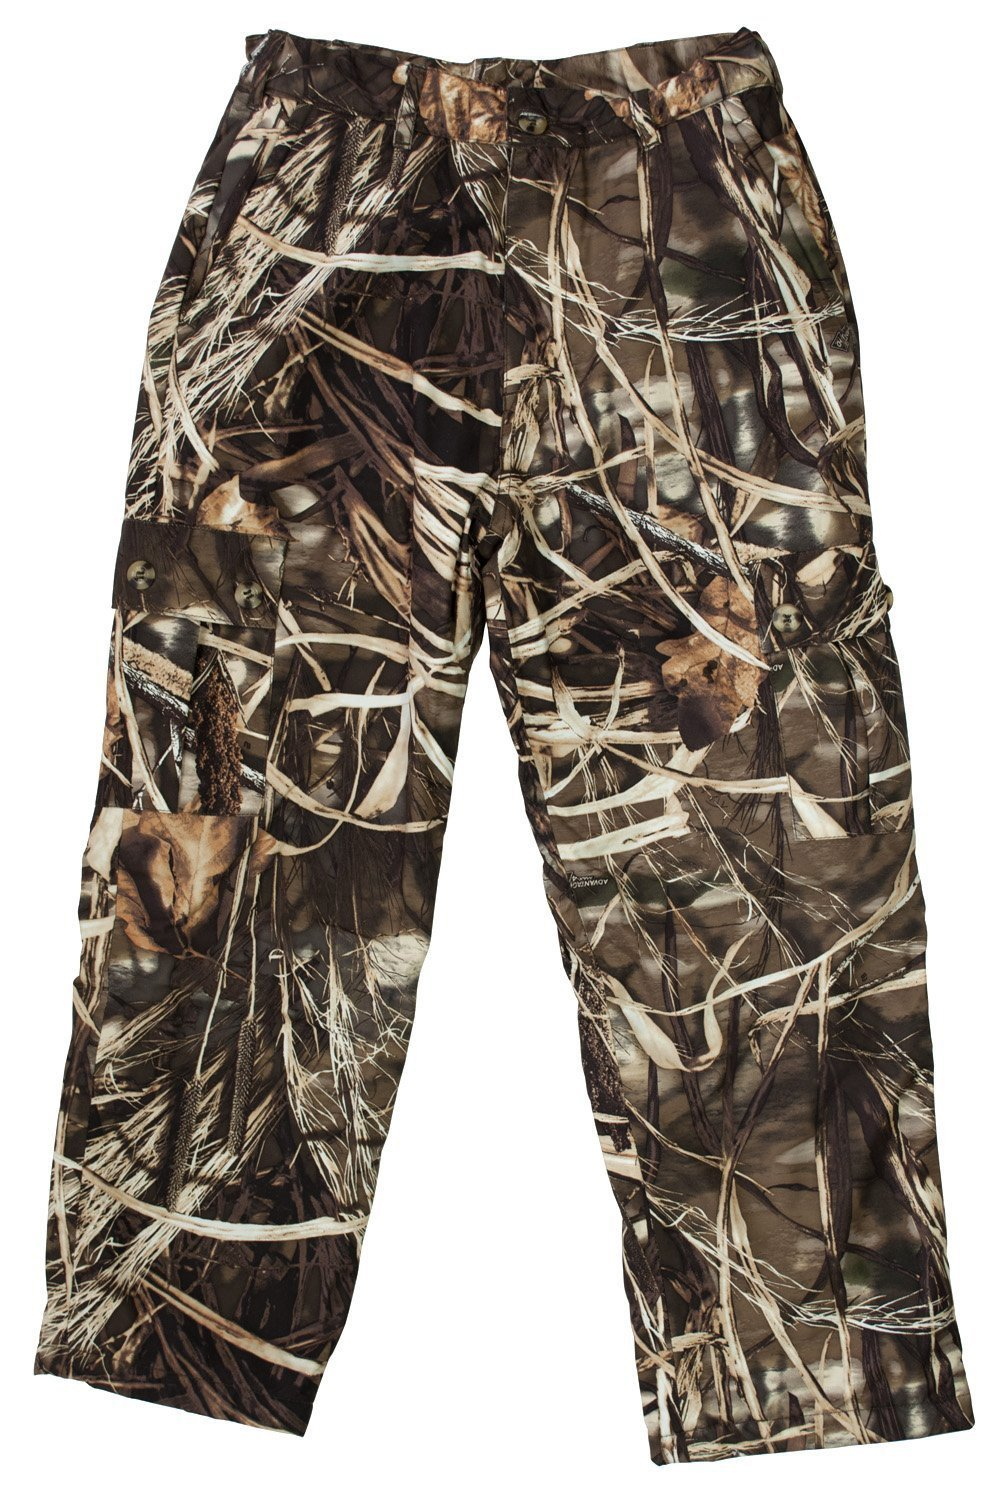 Drake Waterfowl Youth MST Hunting Pants Fleece Lined, Waterproof Hunting Pants Max 4 Color (16) by Drake Waterfowl